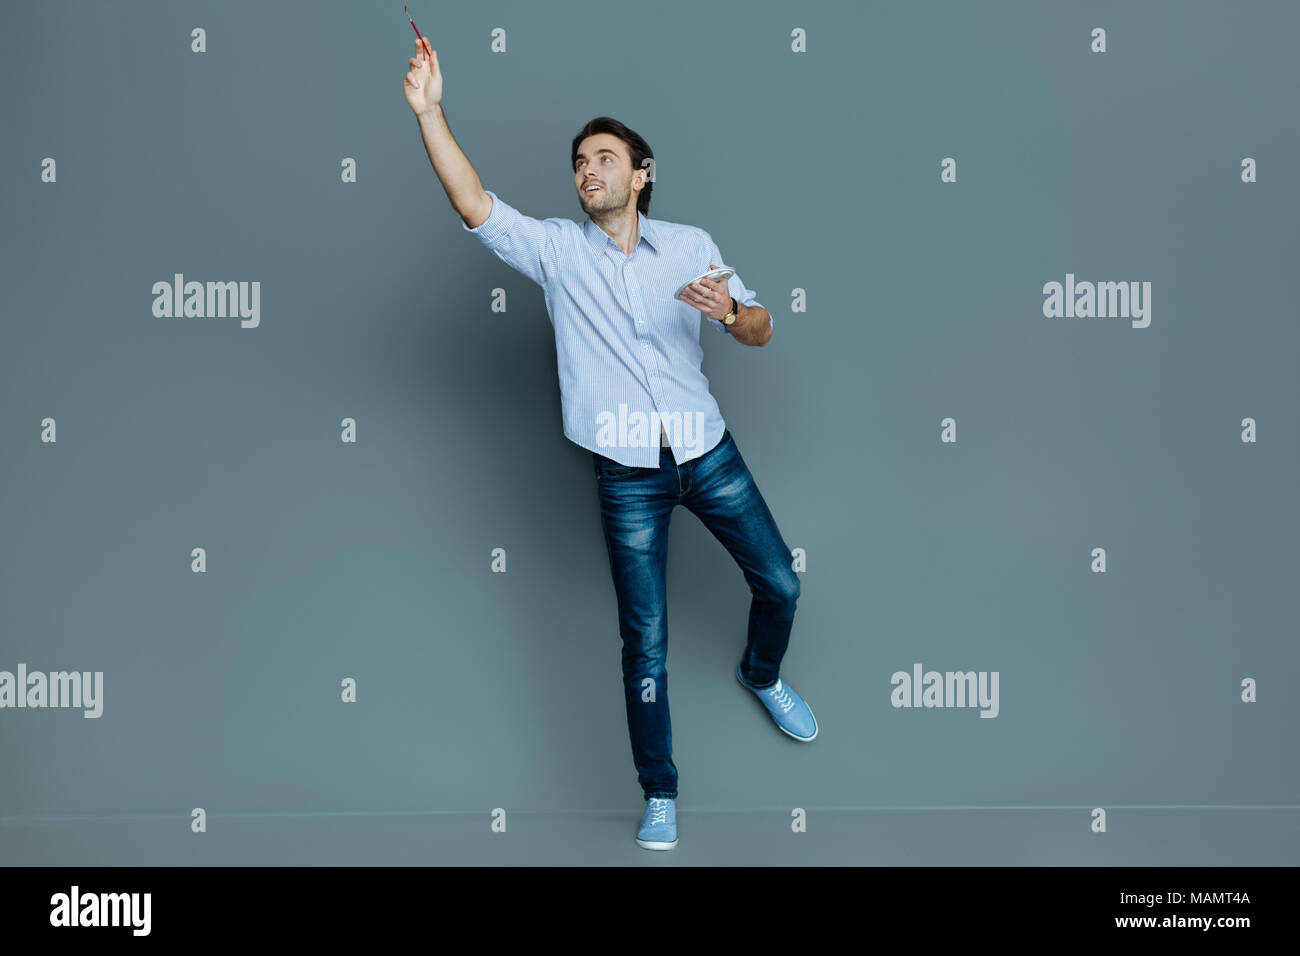 Smart talented man expressing his feelings - Stock Image